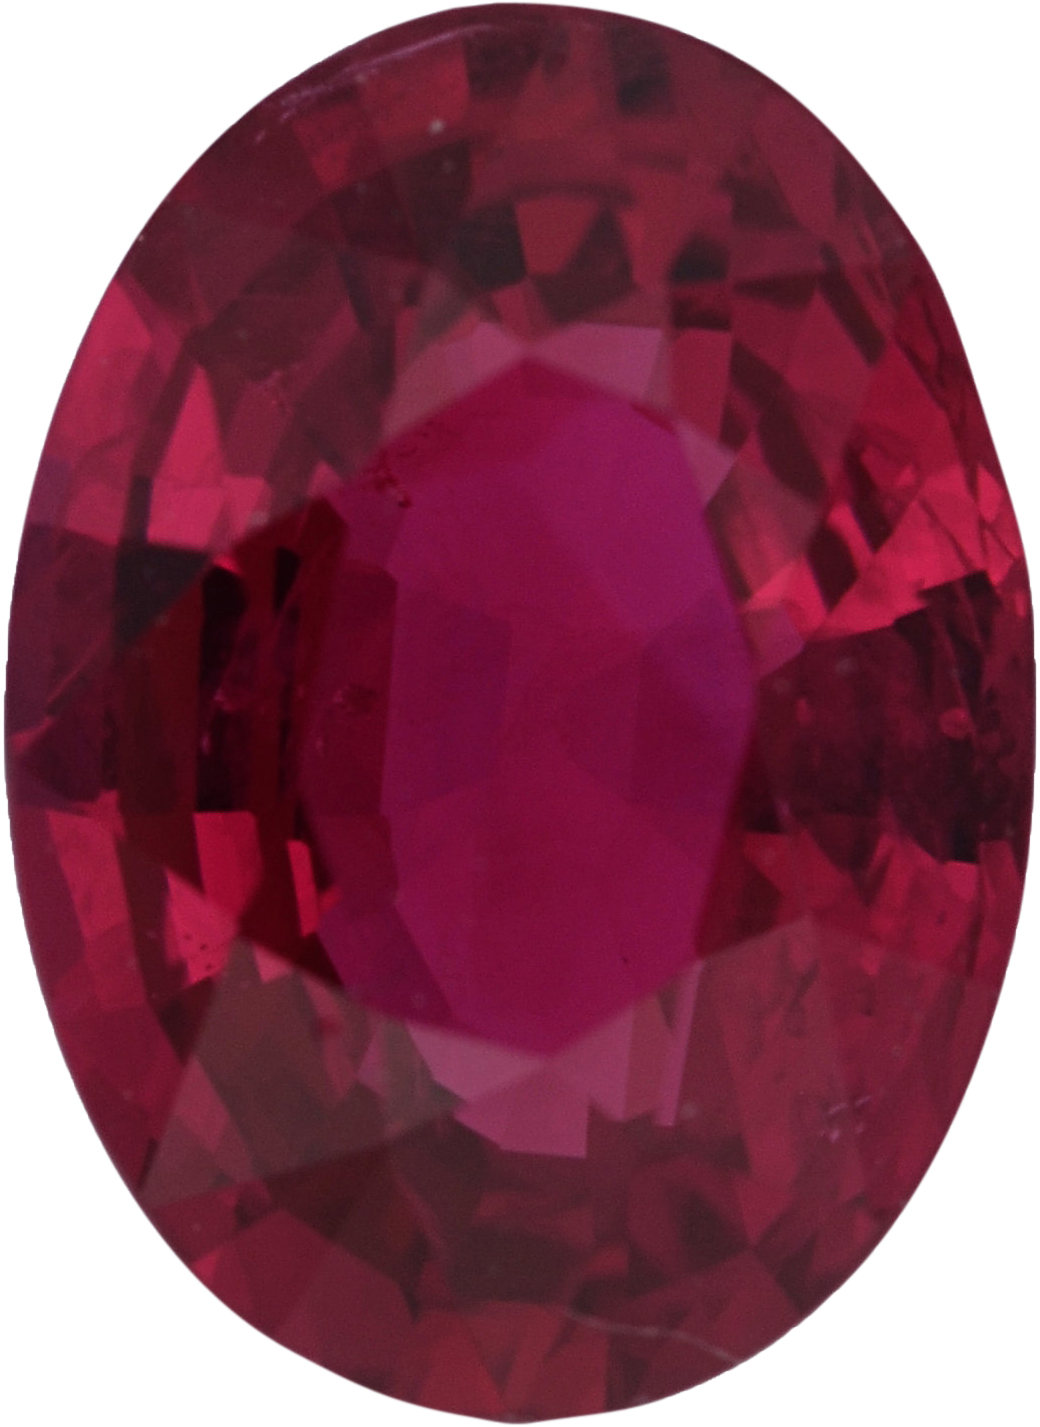 Bright & Lively Loose Ruby Gem in Oval Cut, Deep  Red Color, 7.20 x 5.23 mm, 1.09 carats